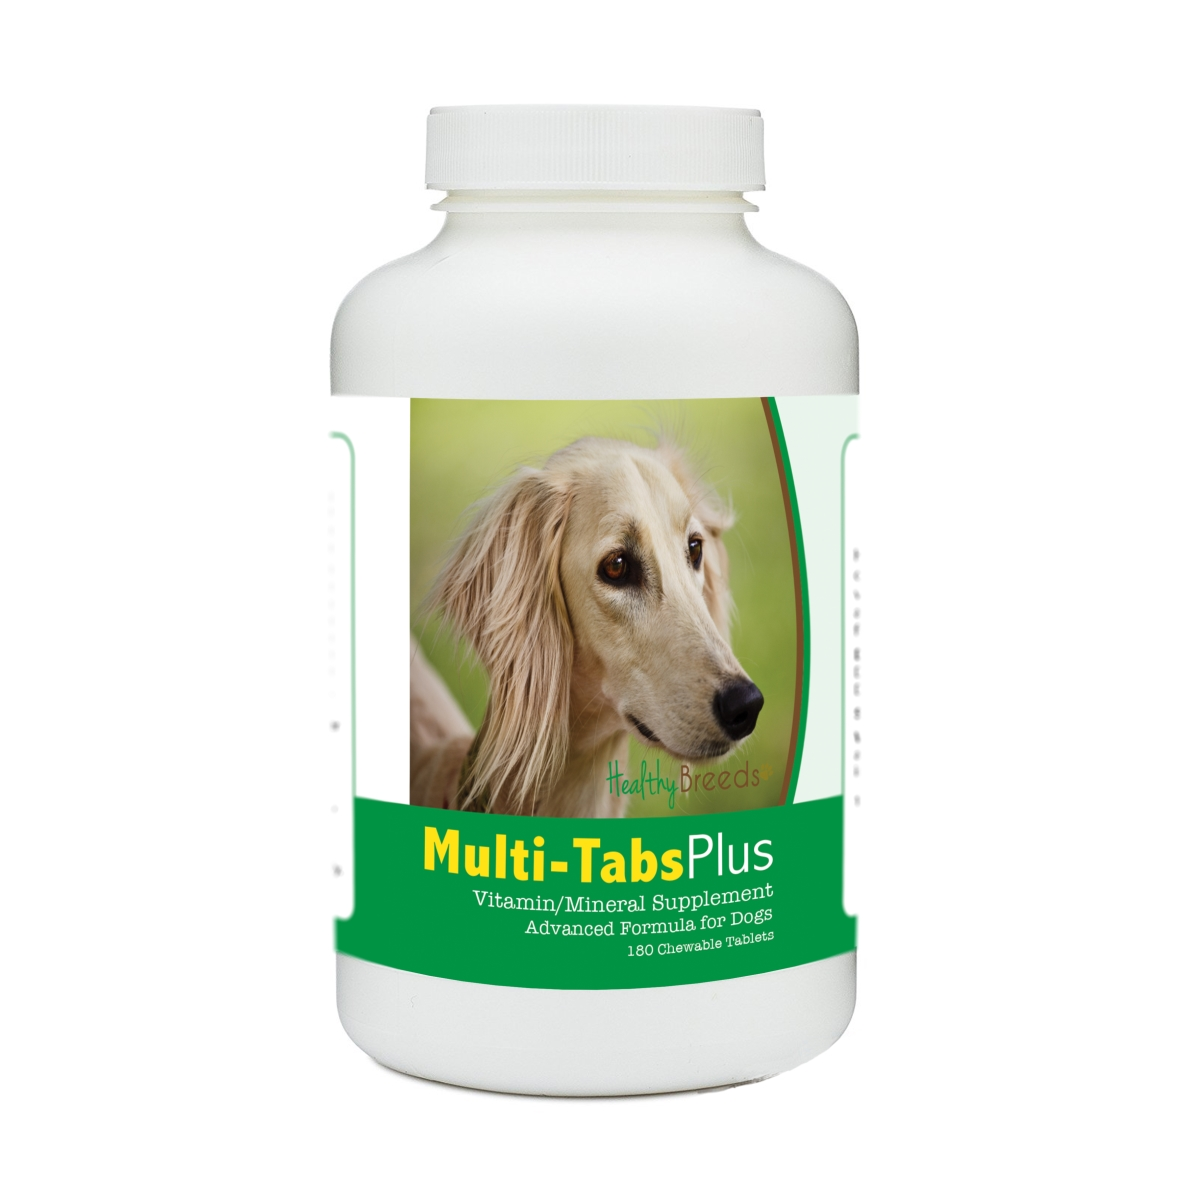 Healthy Breeds 840235140702 Saluki Multi-Tabs Plus Chewable Tablets - 180 Count